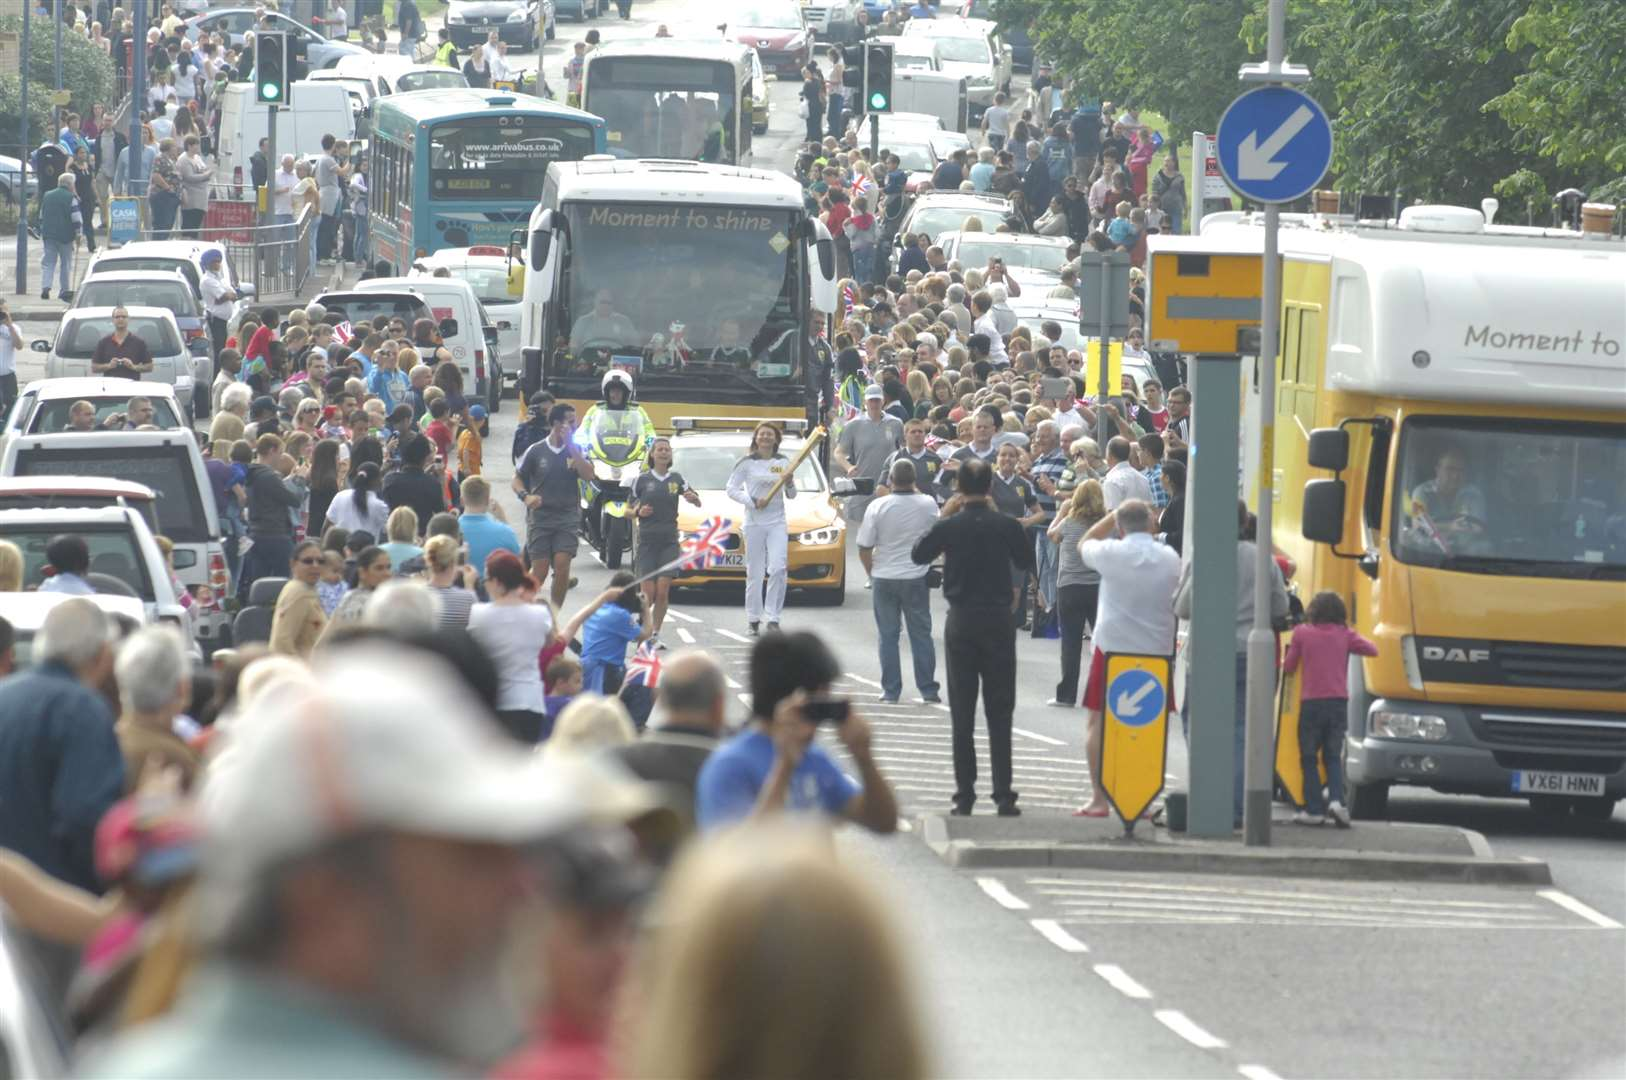 The crowds celebrate the torch passing through Gravesend, just before someone is arrested for making a grab for the flame